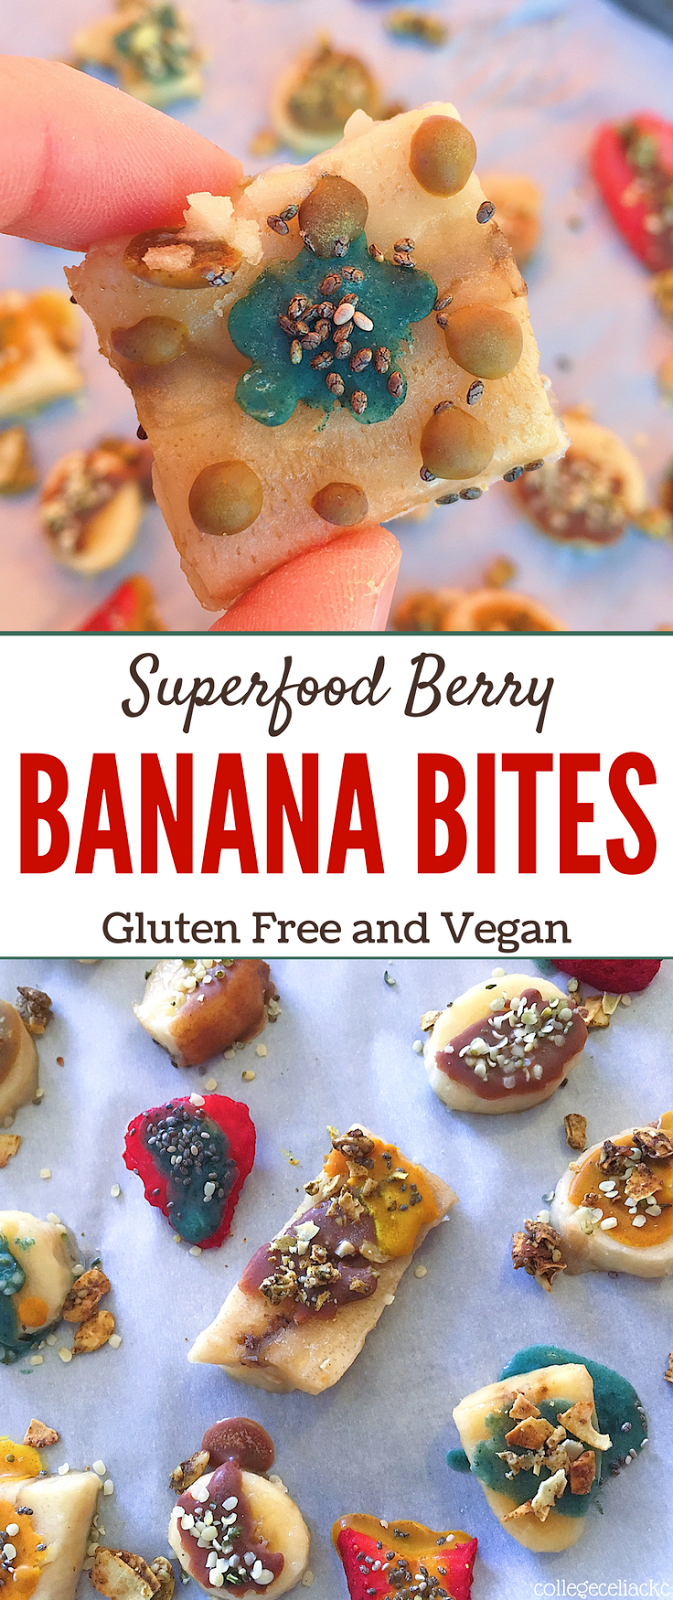 Superfood Berry and Banana Bites (Gluten Free, Vegan)